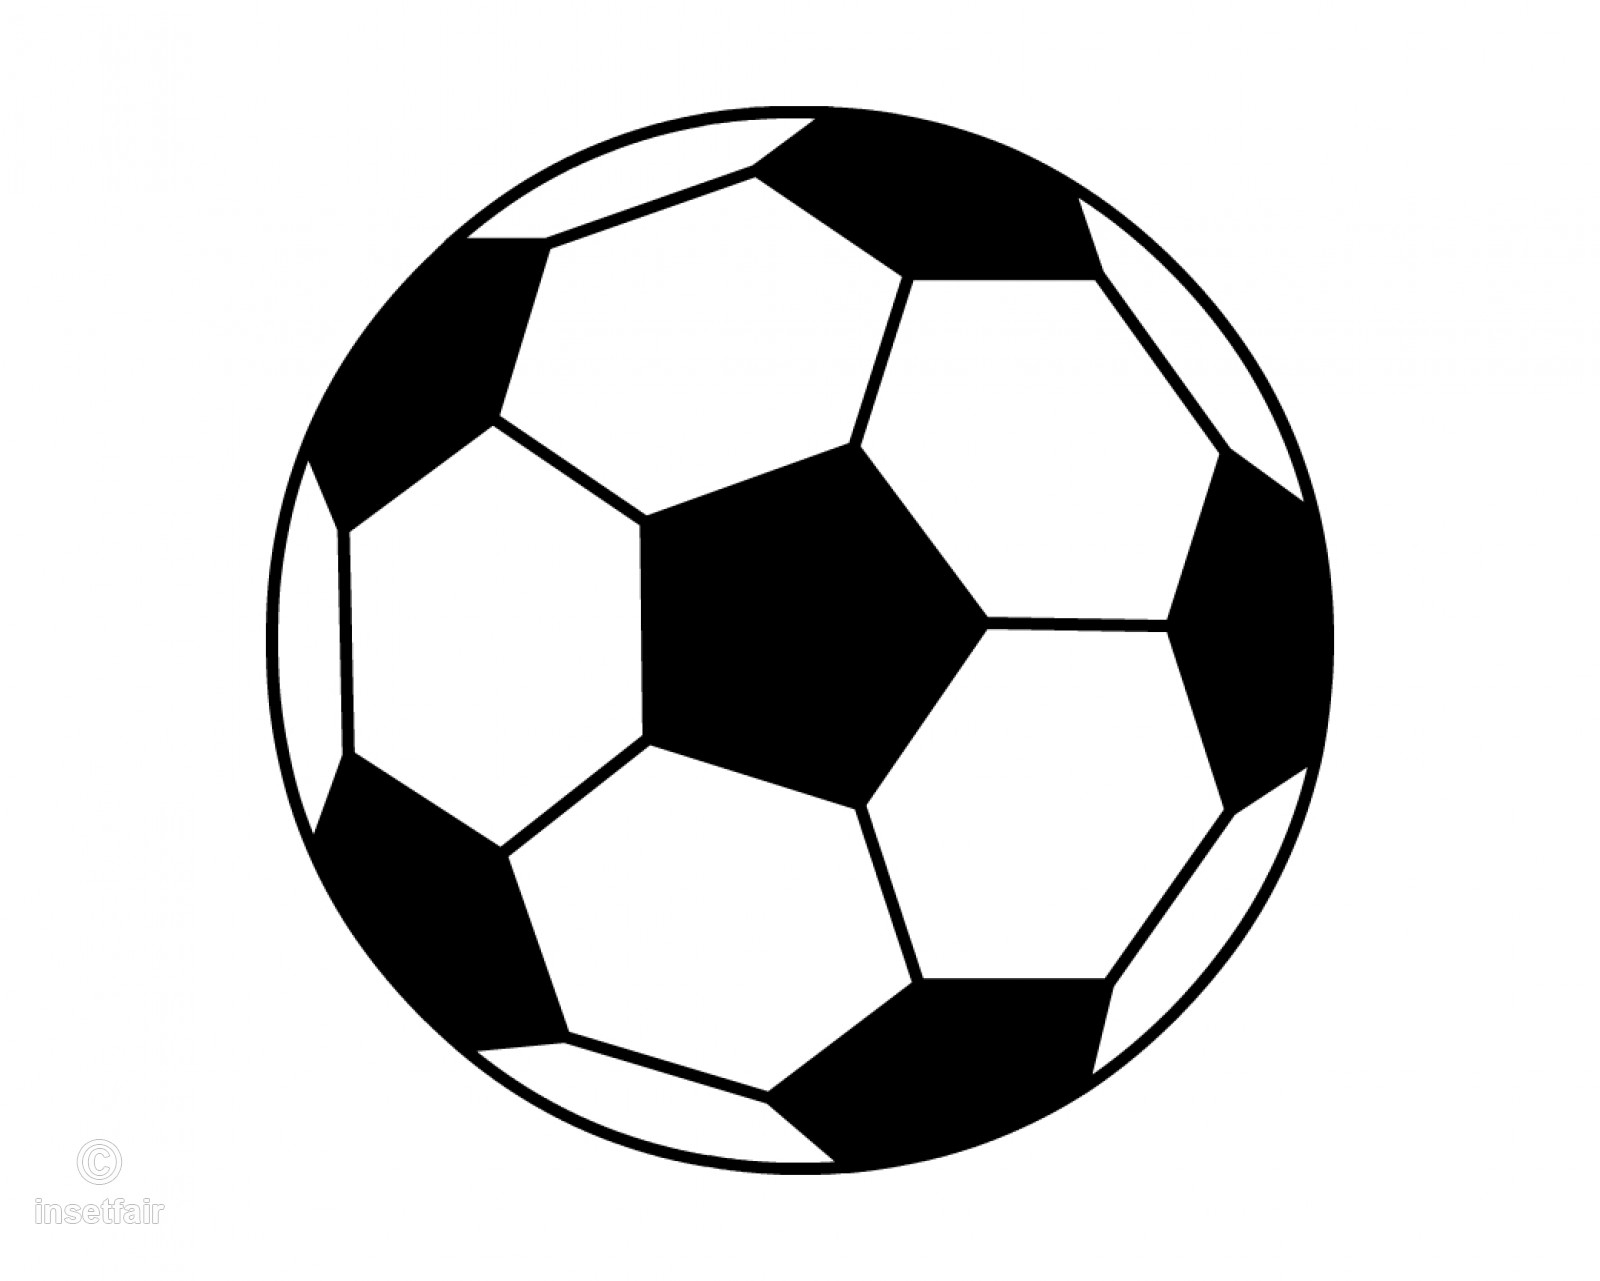 Library of 2018 football graphic stock png files Clipart ...